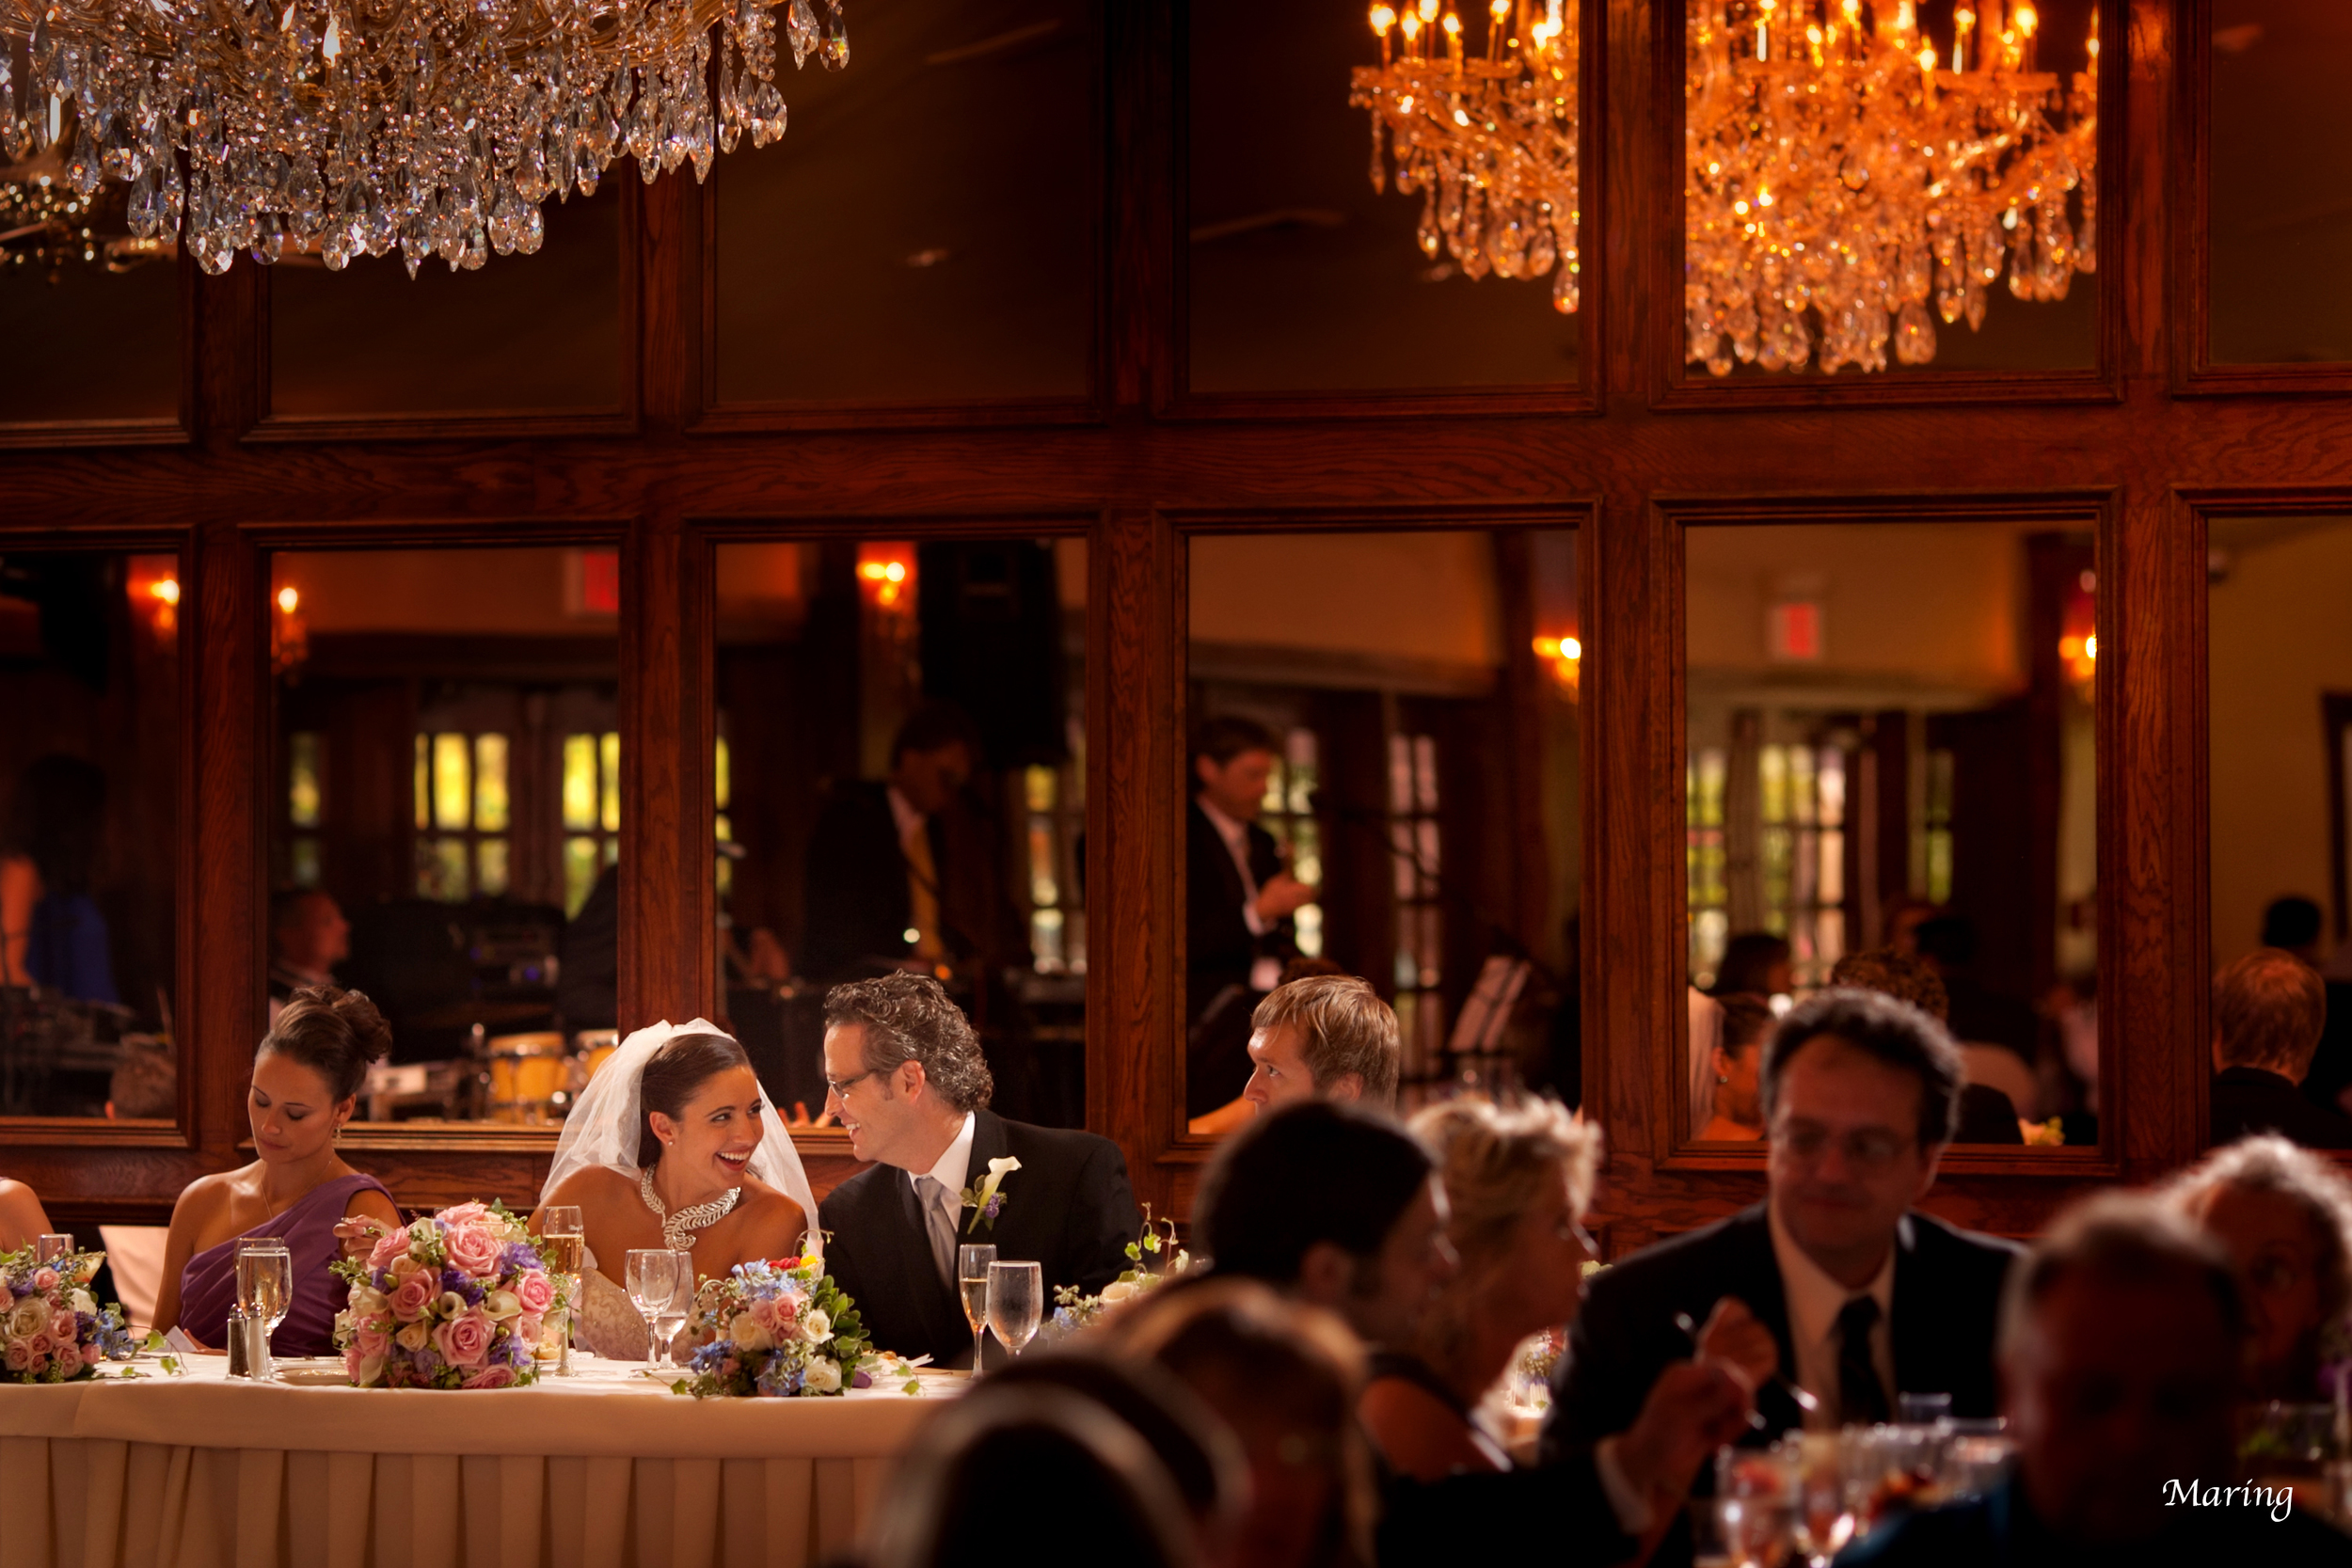 A bride and groom dine together at their head table making sure to eat before greeting tables.